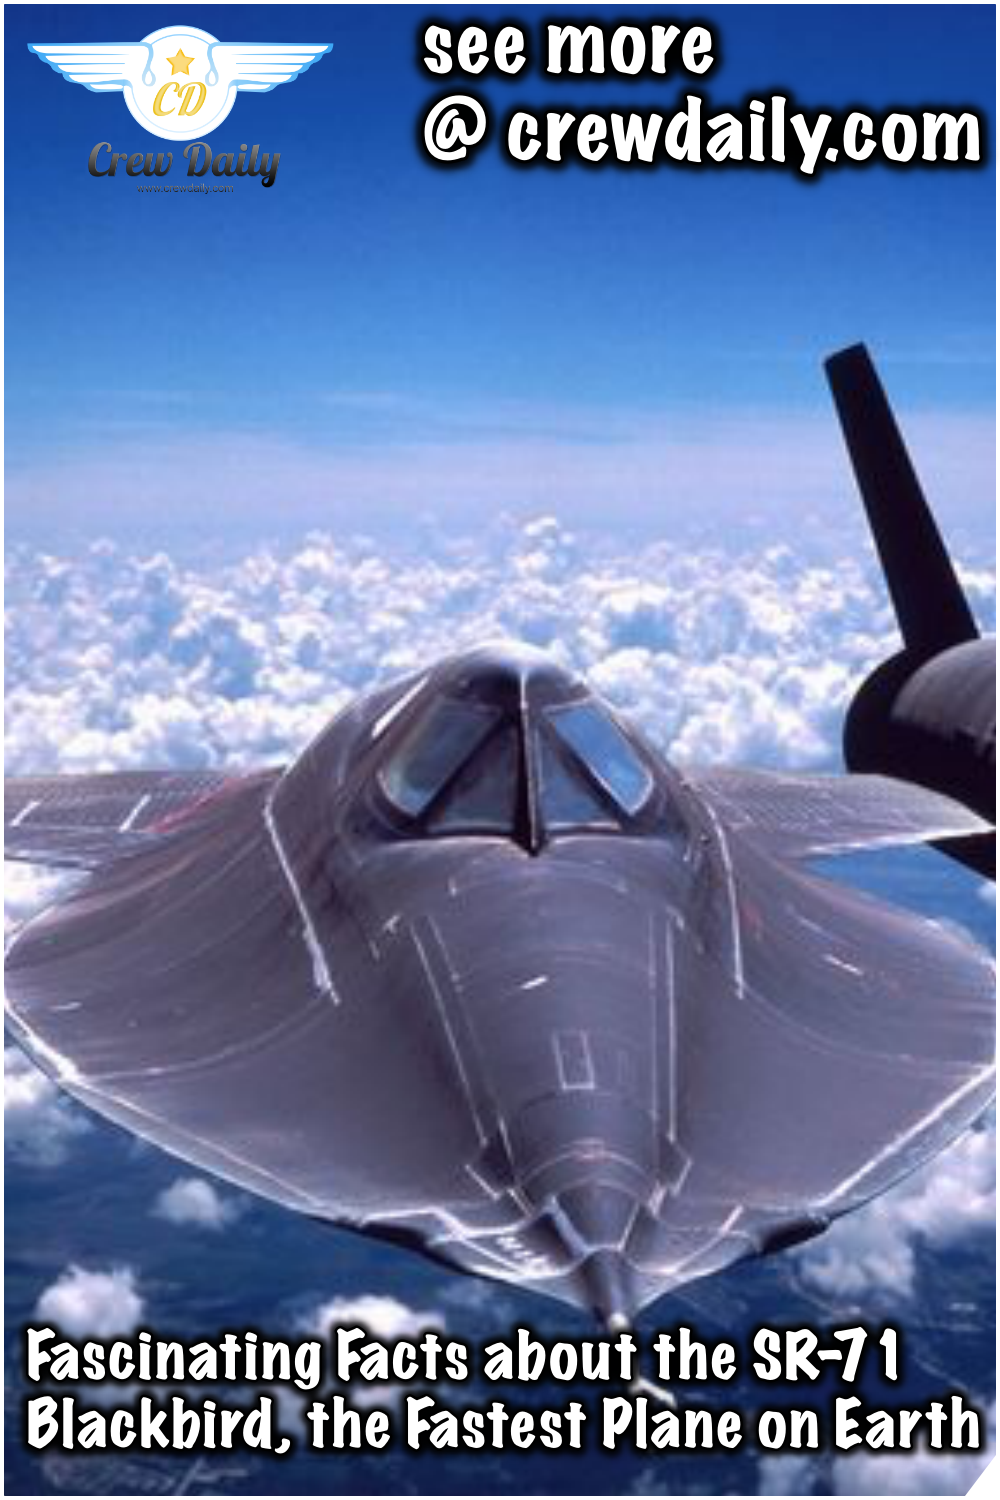 Fascinating Facts about the SR-71 Blackbird, the Fastest